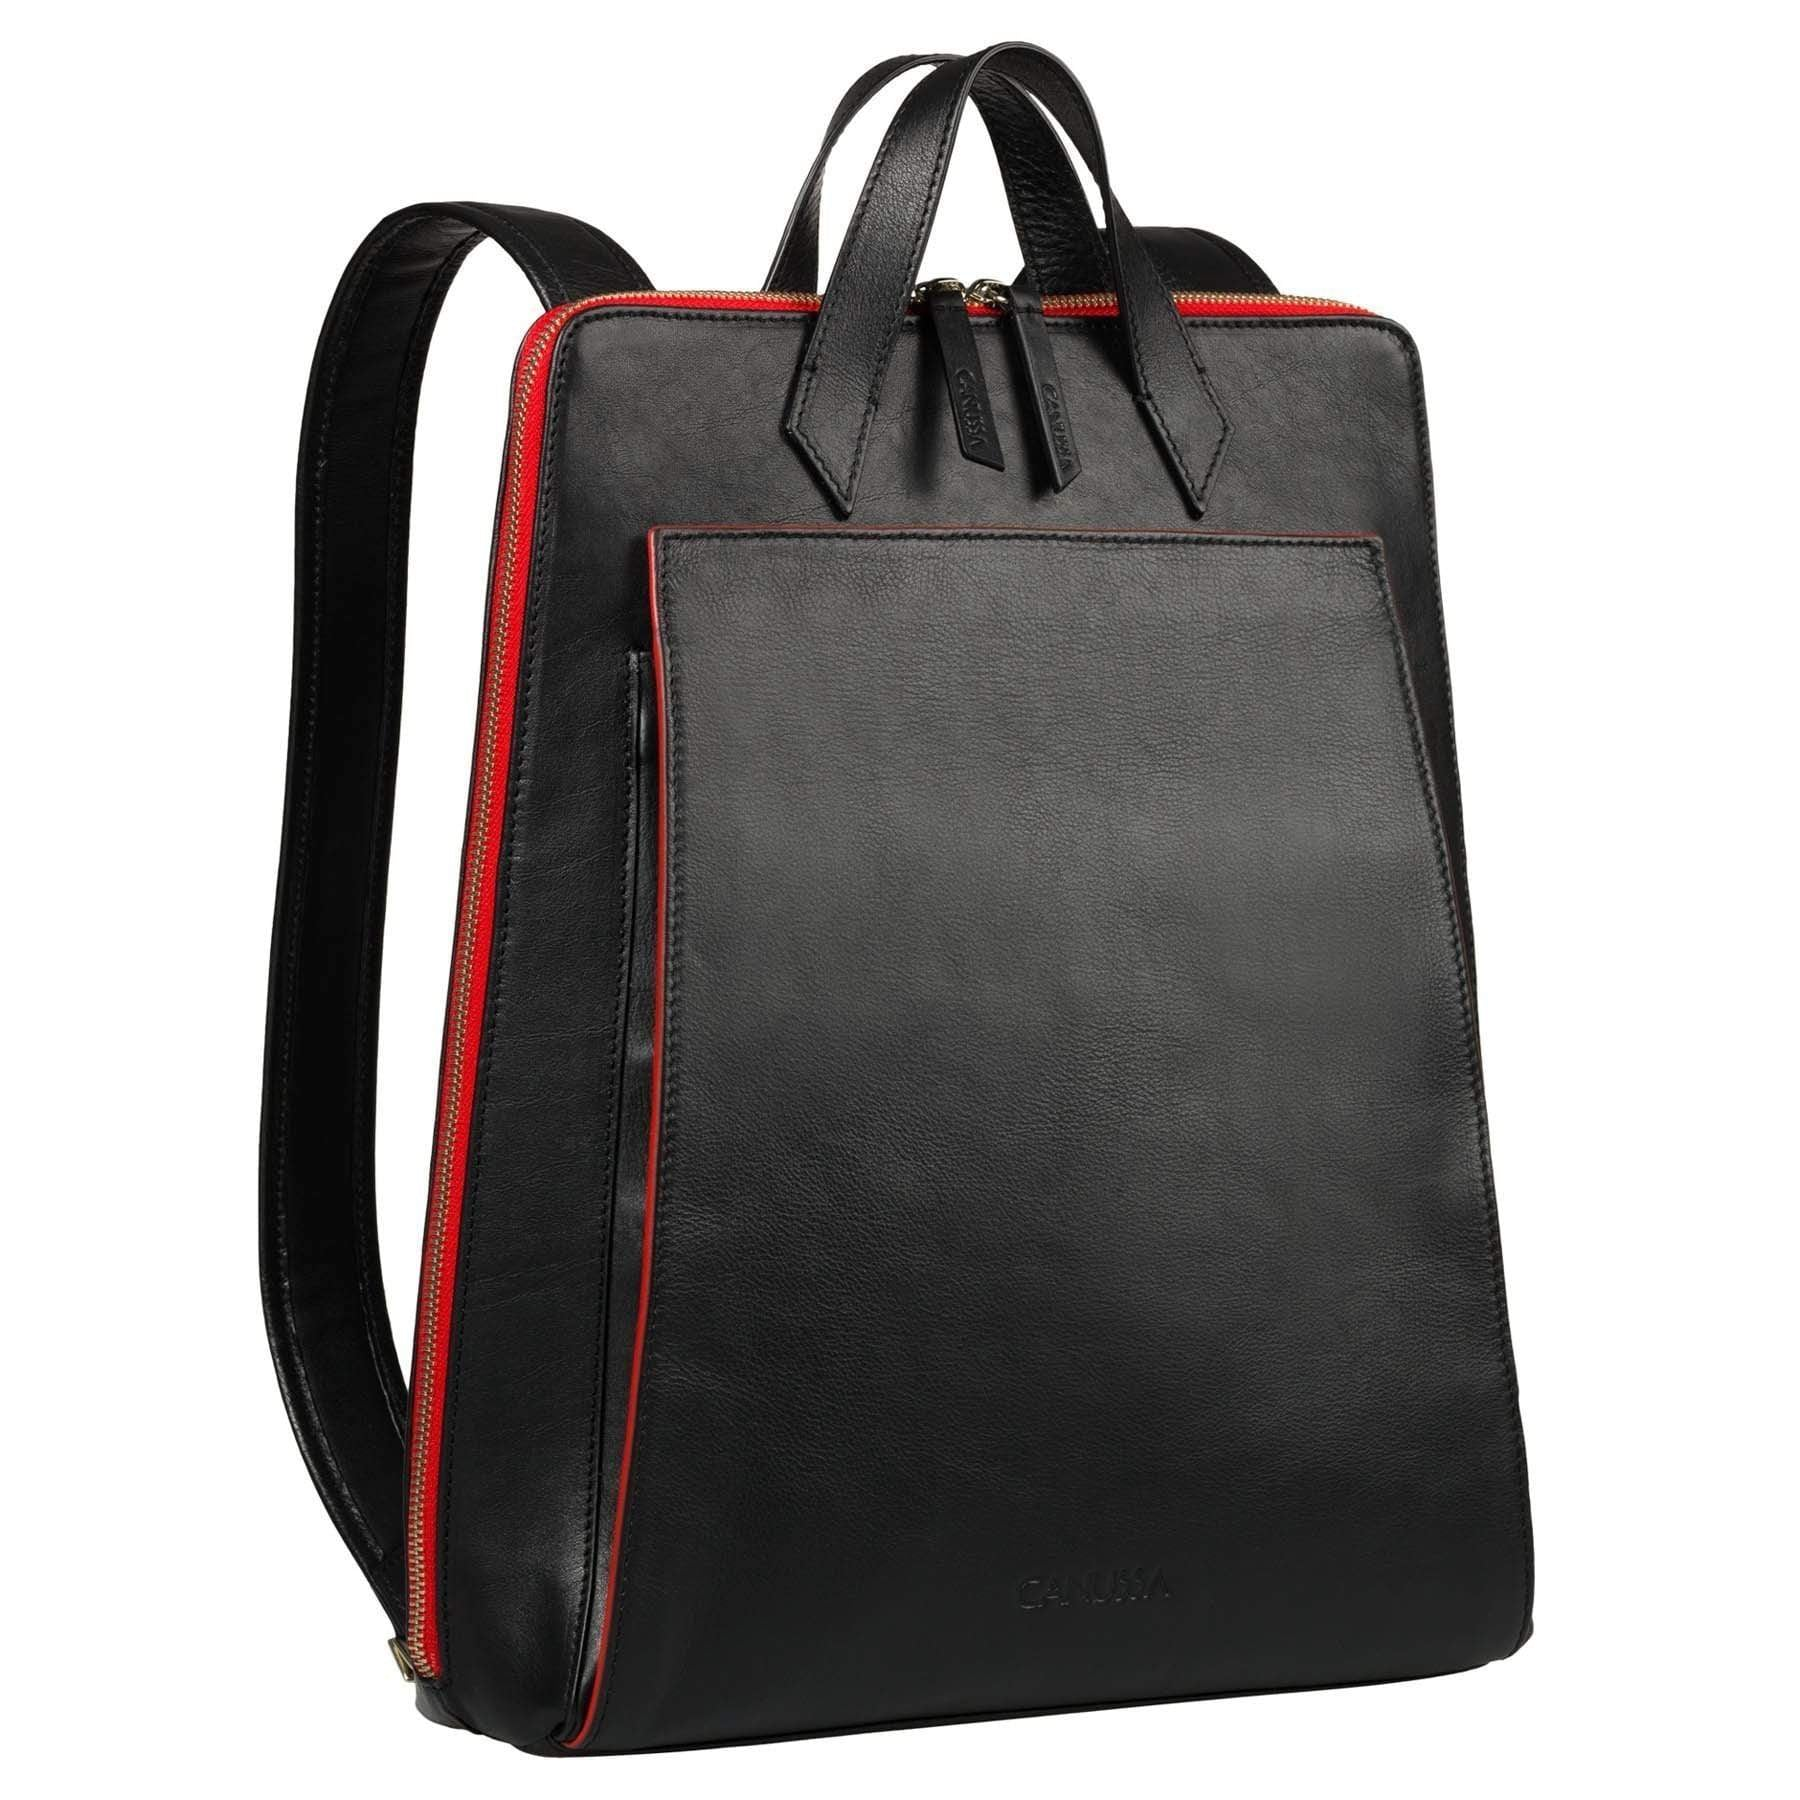 Canussa BackPacks Urban Backpack Black/Red - Vegan Laptop Backpack sustainable fashion ethical fashion